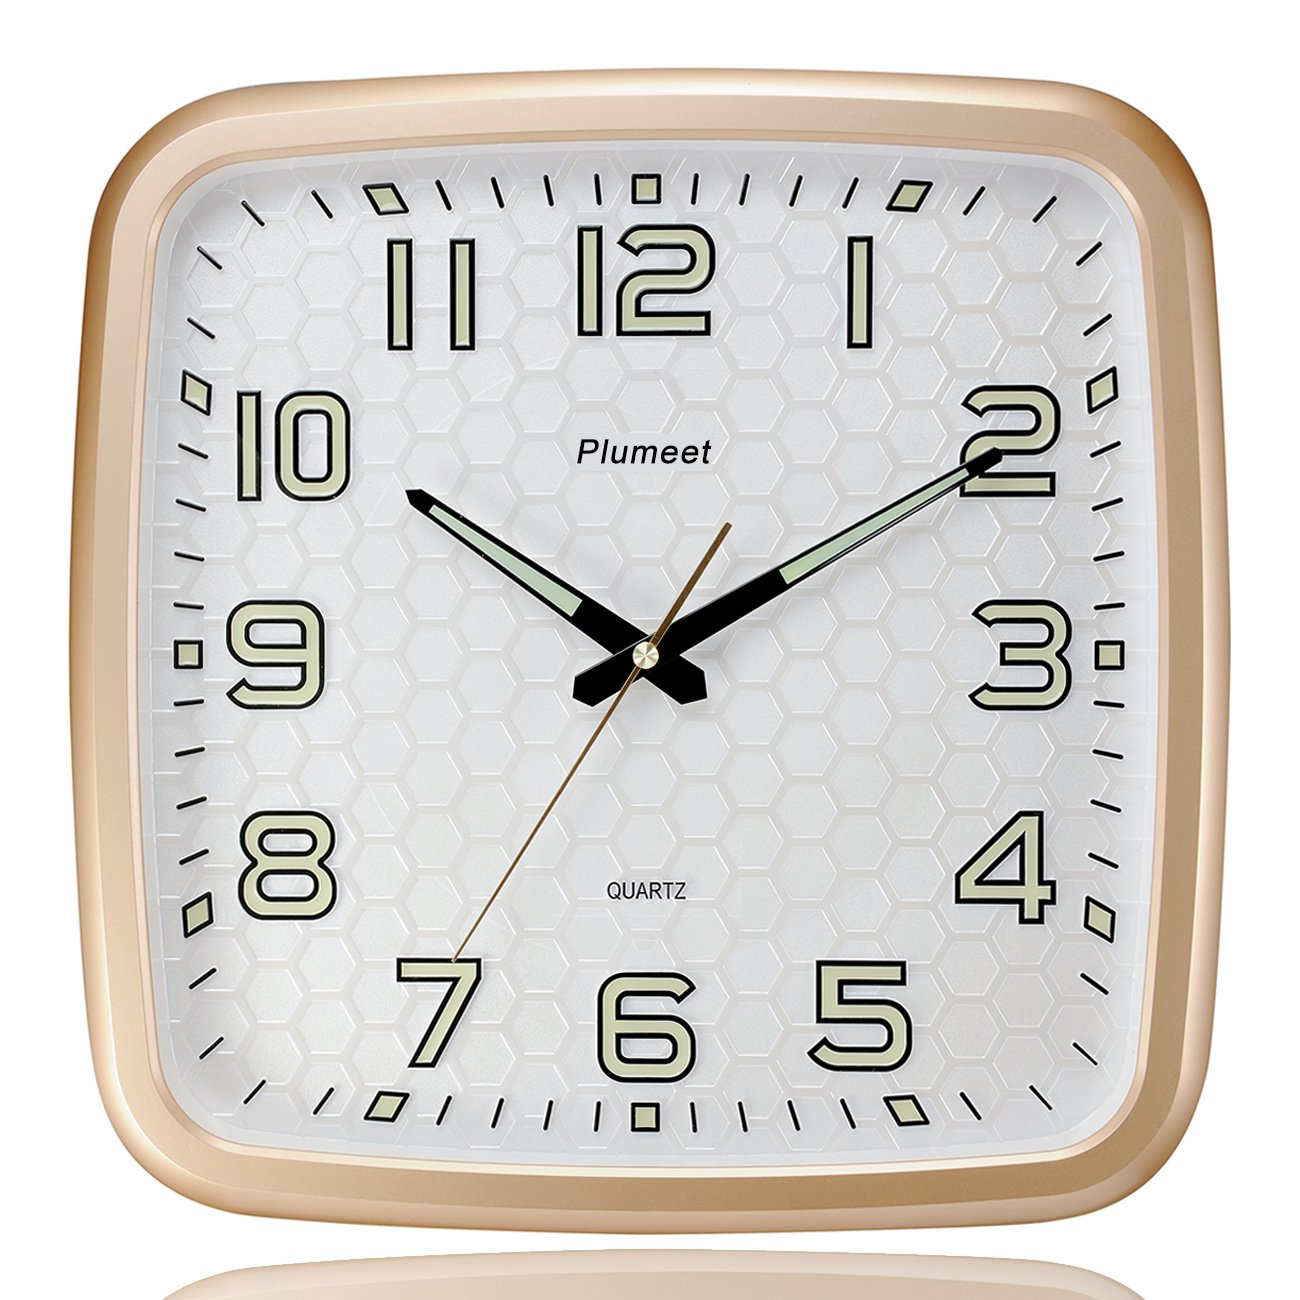 Plumeet 14-Inch Wall Clock with Classics and Specified Design of Silent Non-Ticking Night Lights for Indoor Kitchen Large Number Battery Operated (Gold) 2